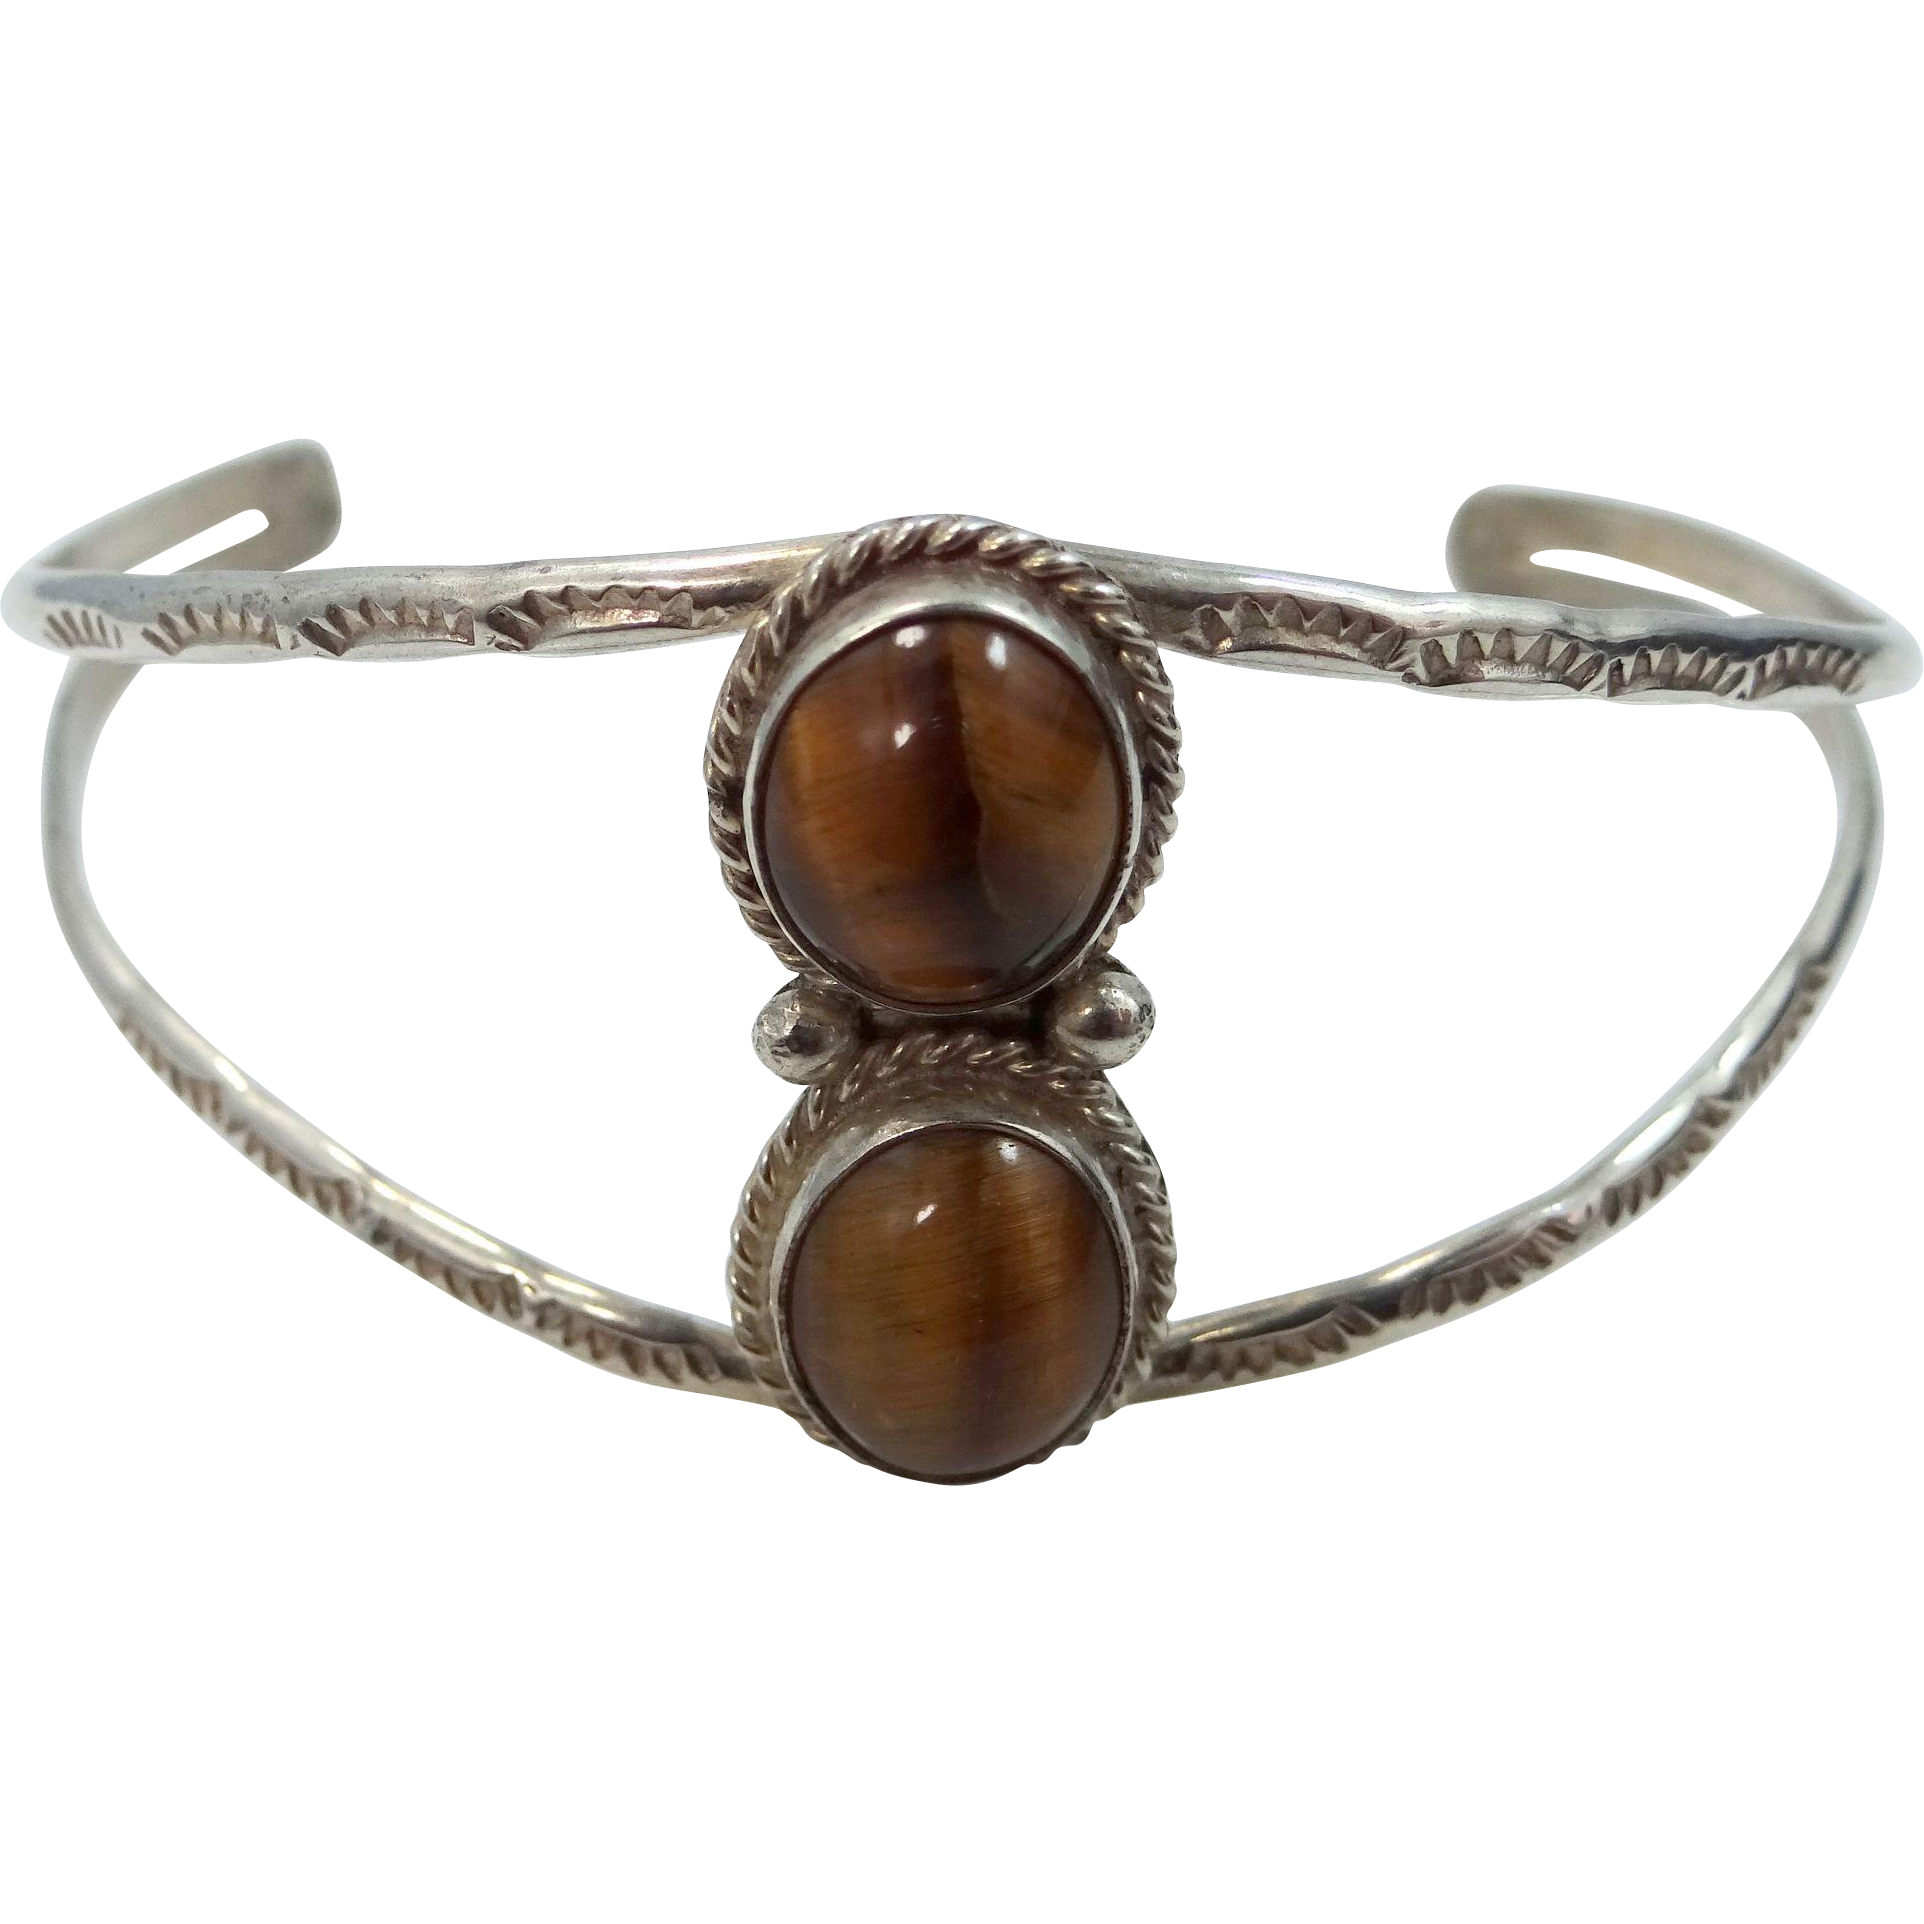 Robert Bencenti Navajo Sterling Silver and Tiger Eye Cuff Bracelet